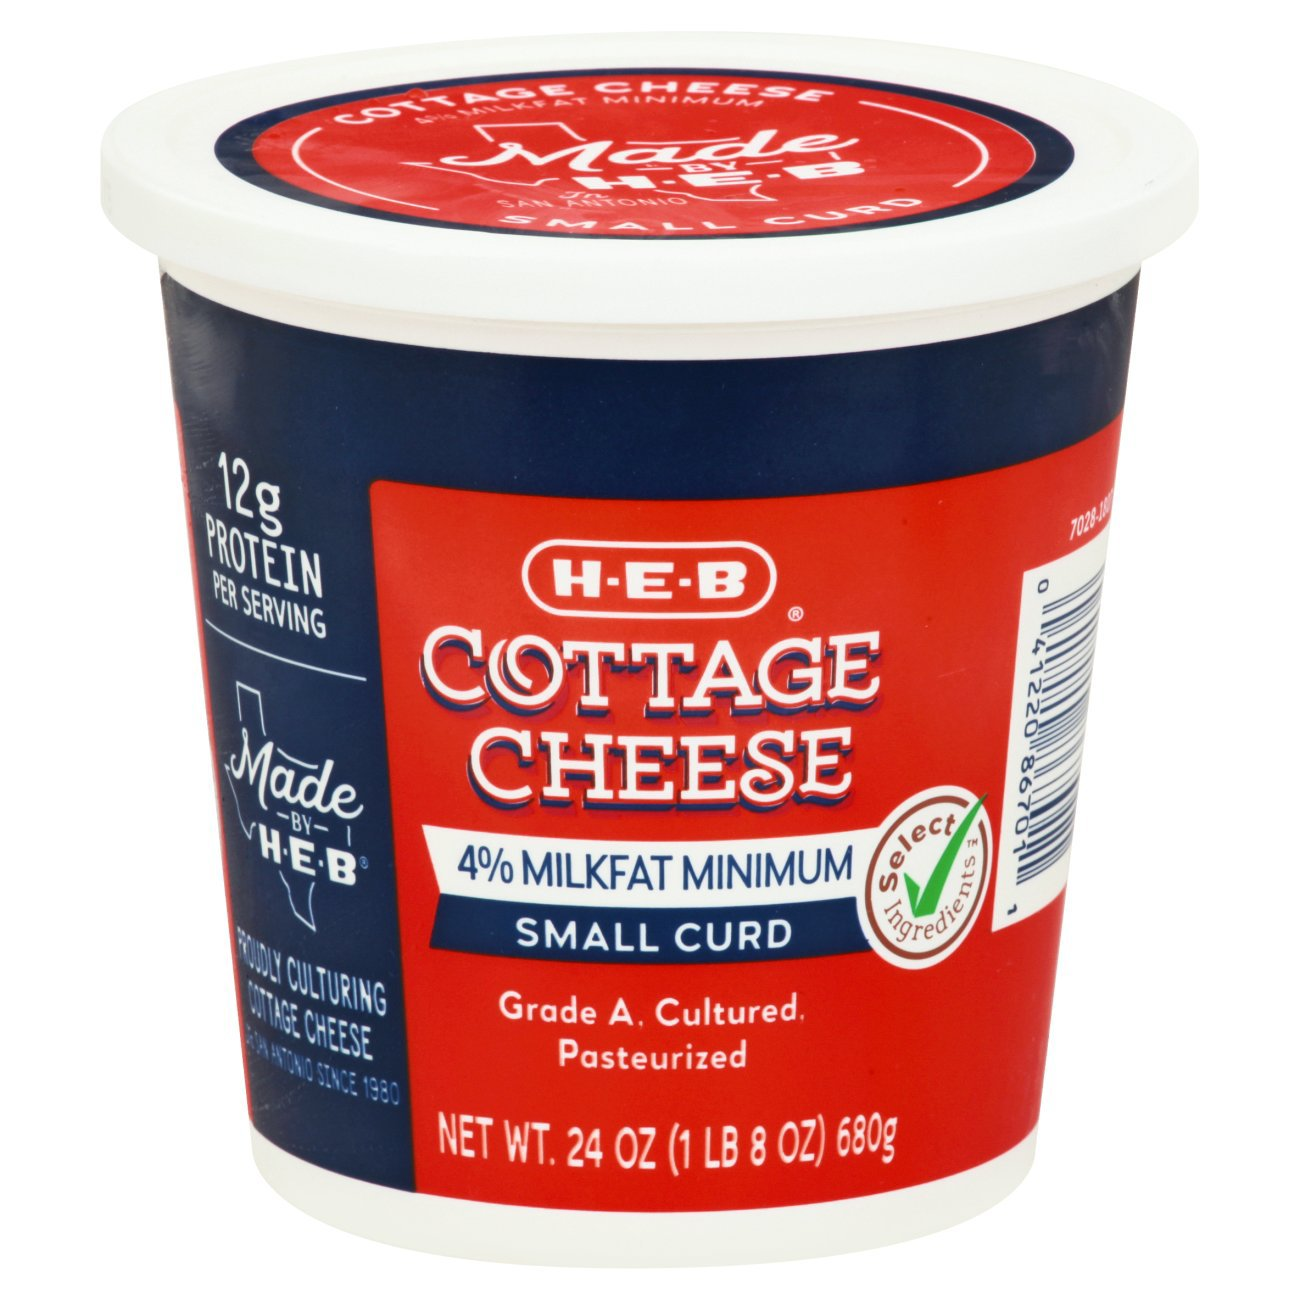 Hu2011Eu2011B Small Curd Cottage Cheese U2011 Shop Cottage Cheese At HEB